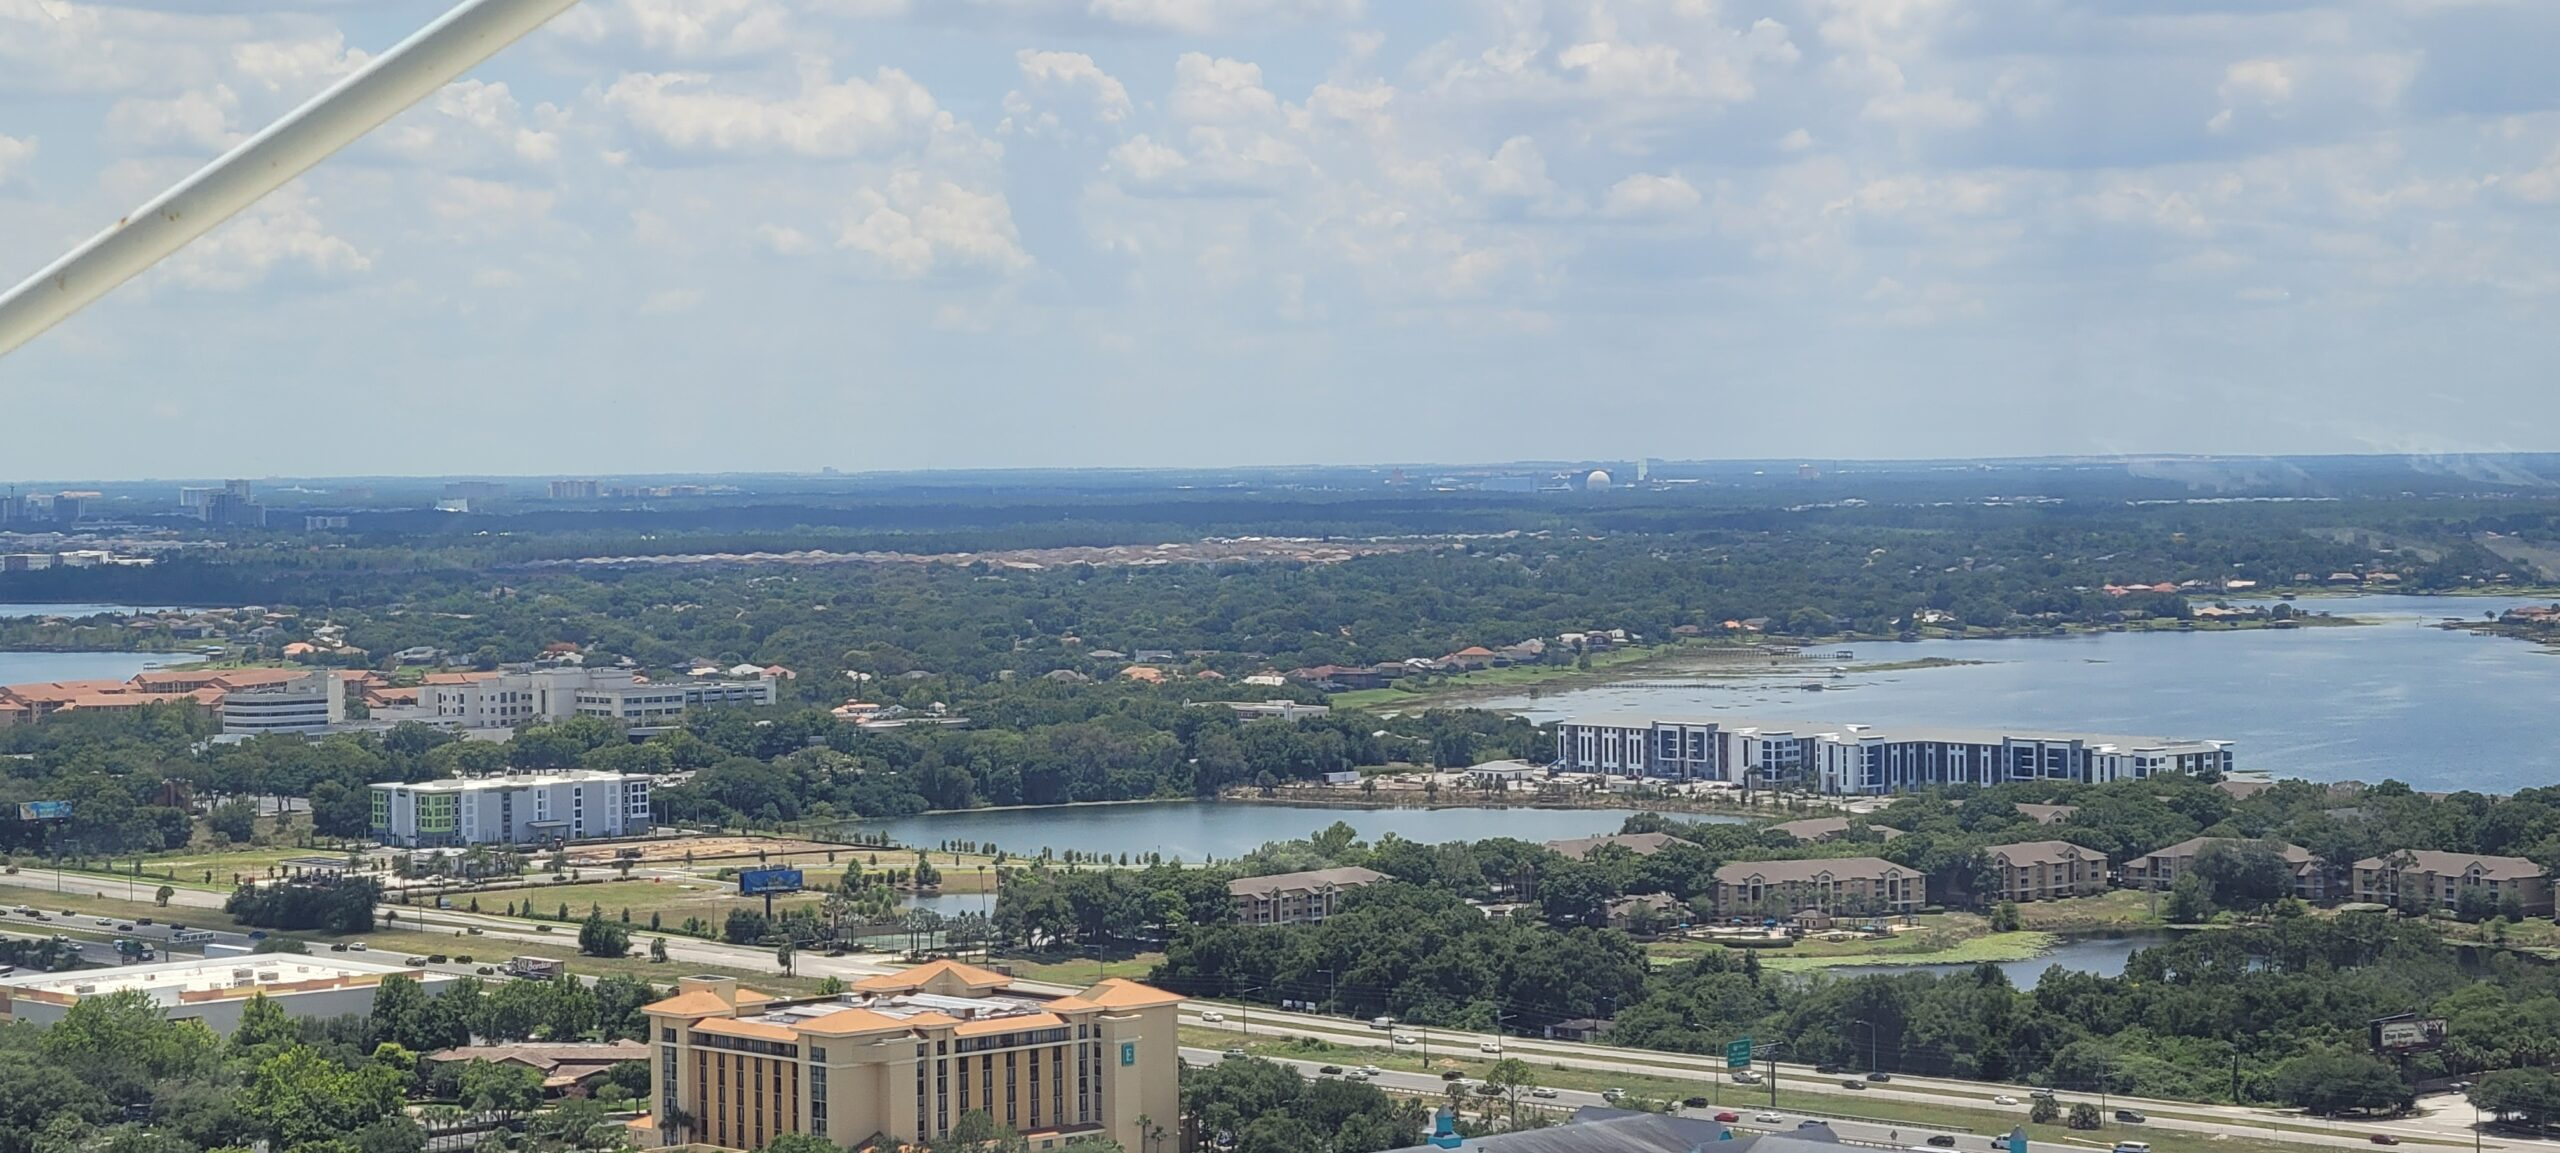 Have a family fun day at ICON Park in Orlando 27